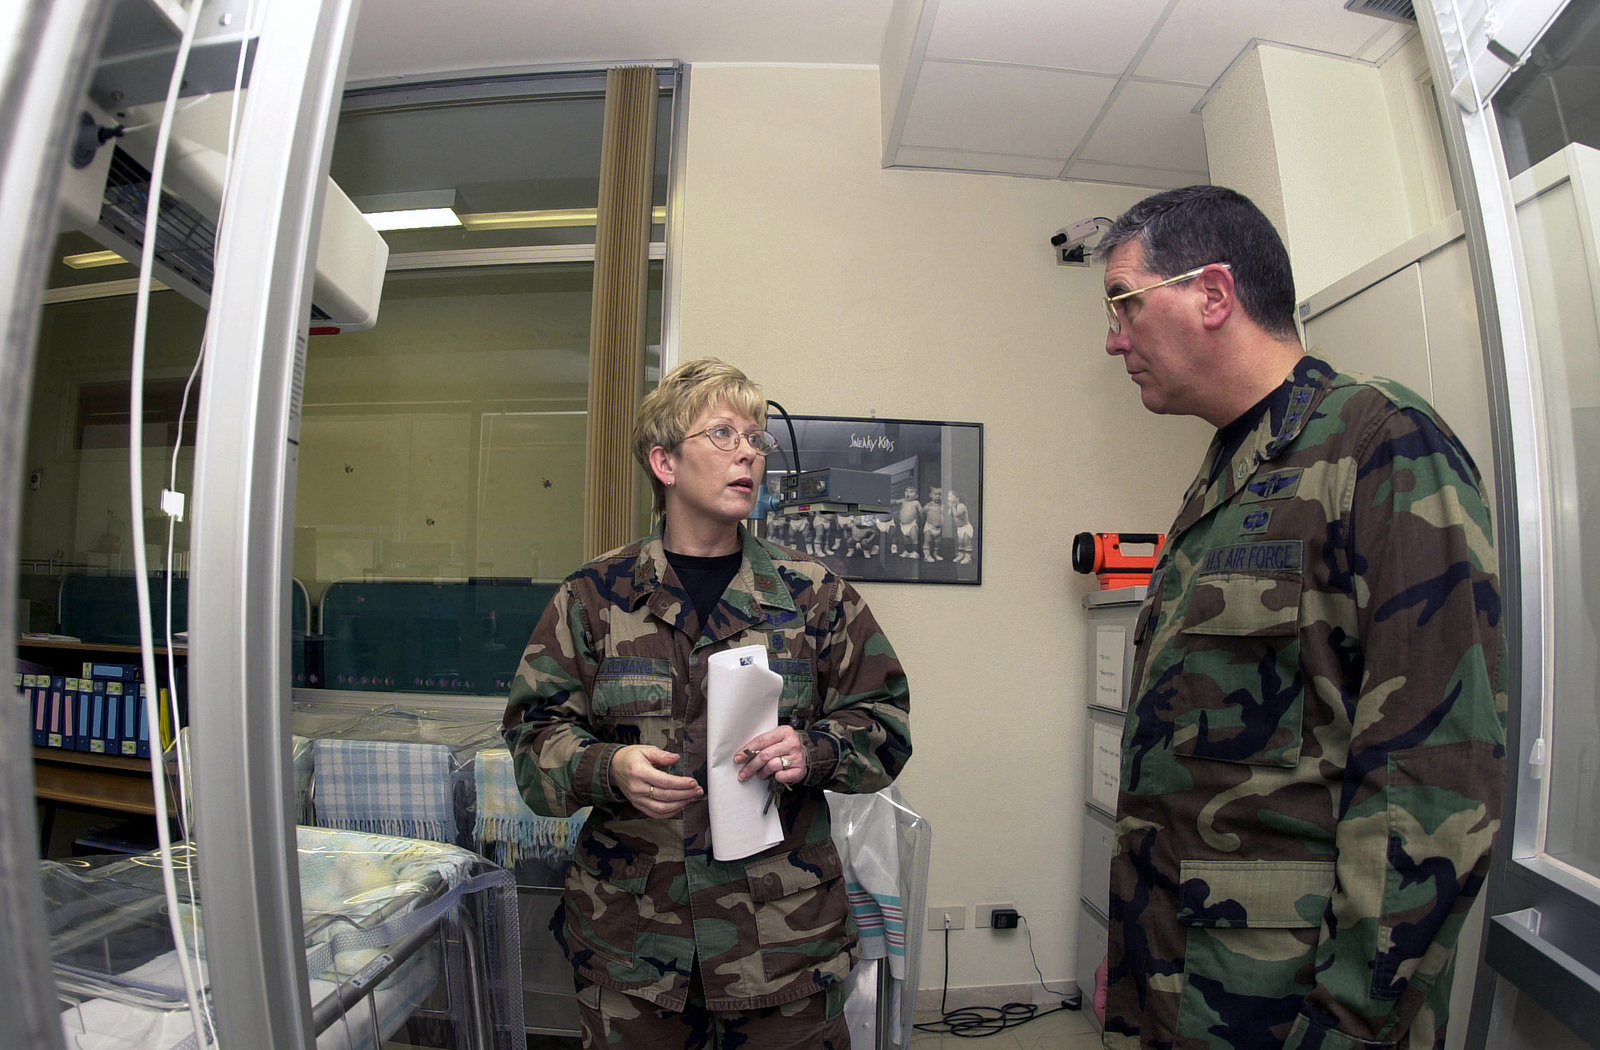 Major Lee Anne Lamer, who heads up the 31st Medical Operations Squadron, for the 31st Medical Group, Aviano Air Base, Italy, shows Lieutenant General Paul K. Carlton, Surgeon General of the Air Force, the post-delivery care room at Sacile Hospital